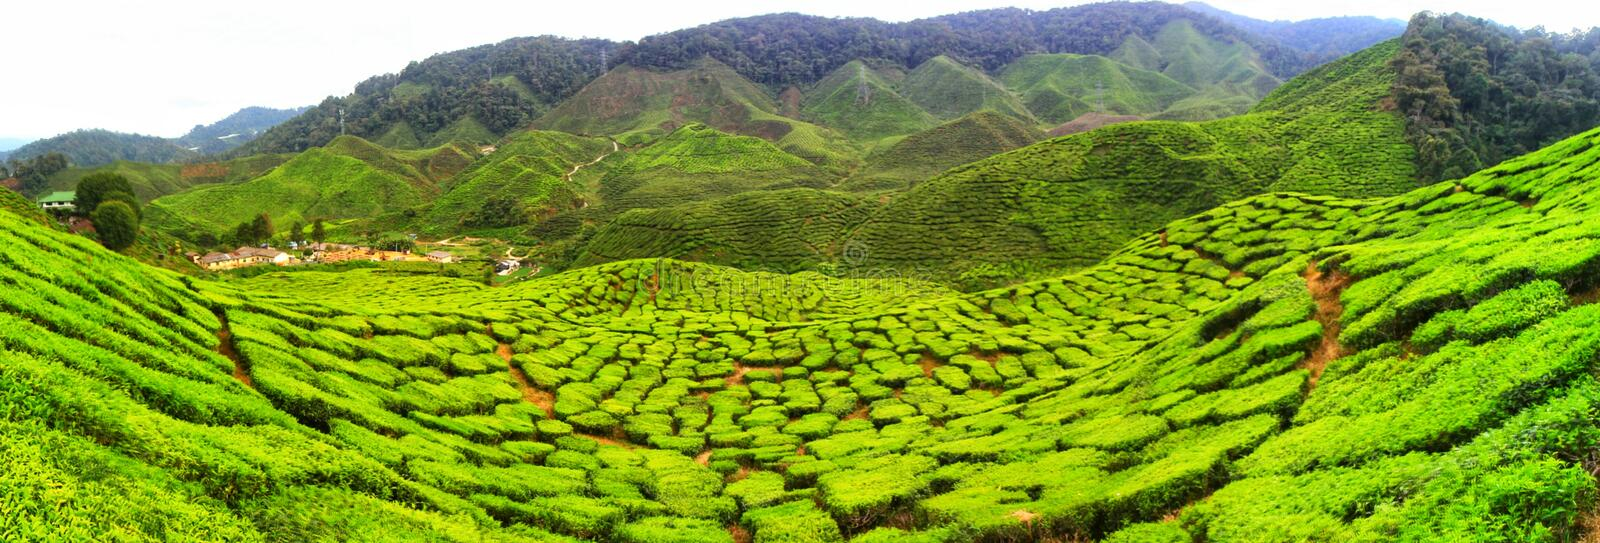 Tea farm Cameron Highland Malaysia stock photography